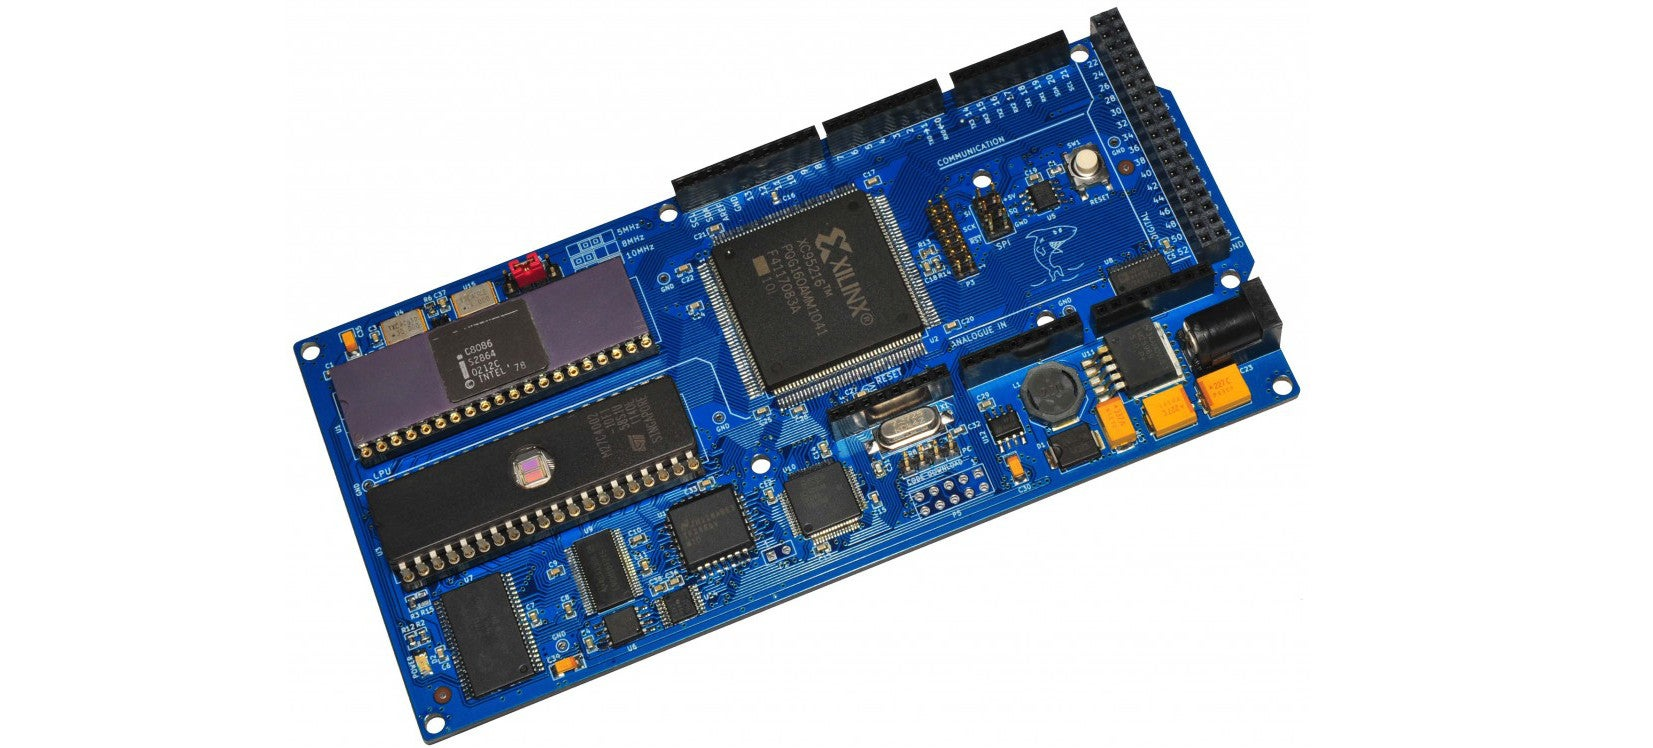 This Arduino-Style Board Uses Intel's 37-year Old 8086 Chip